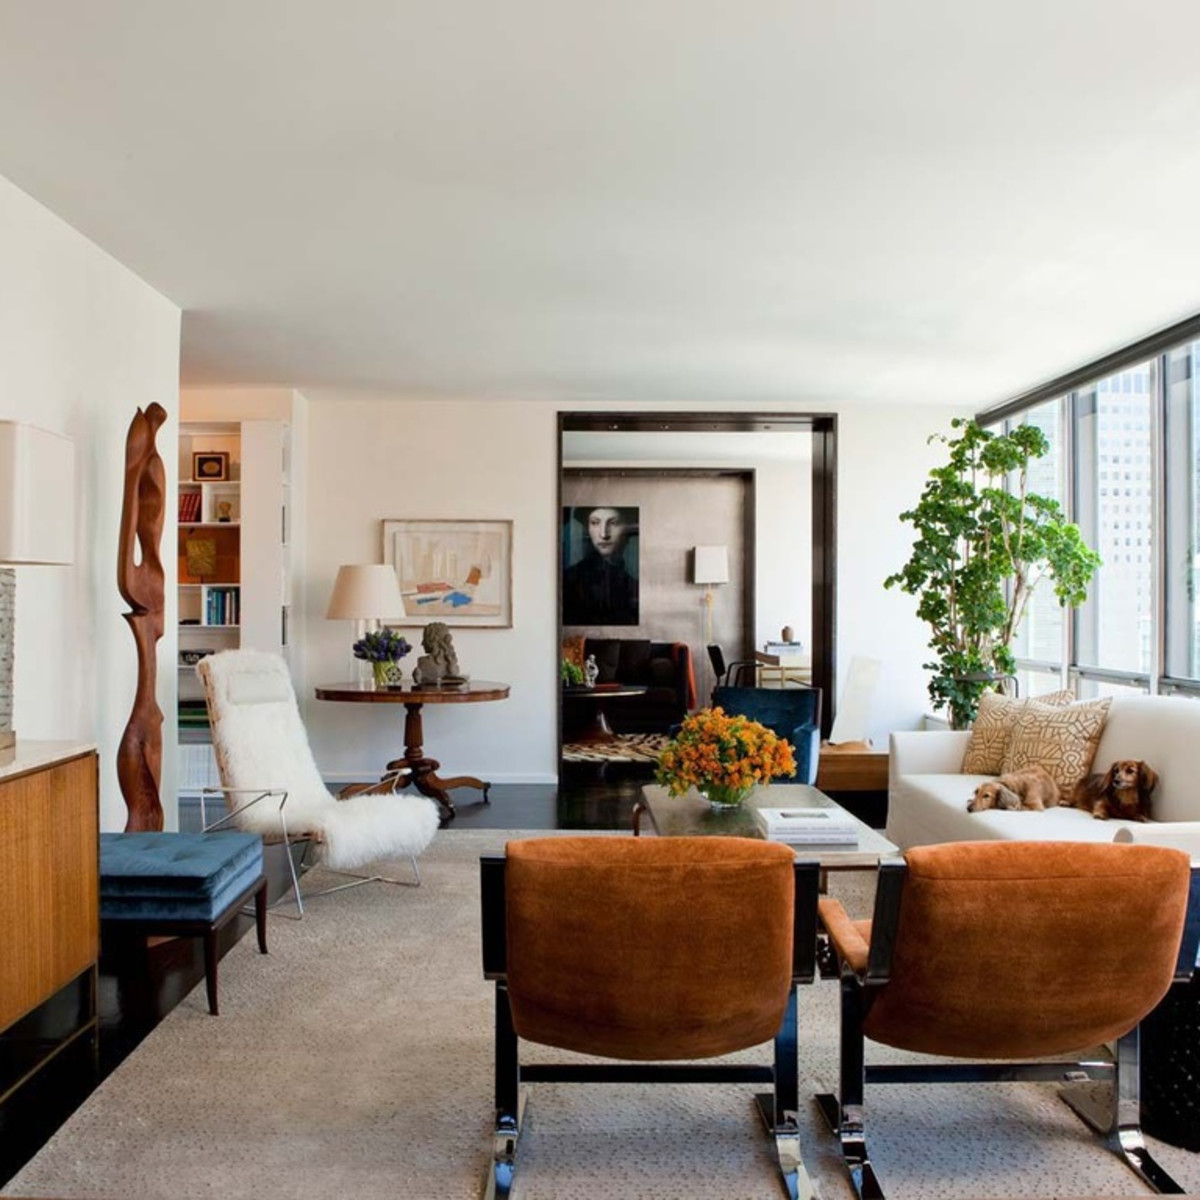 Home Design Experts: How On-trend Is Your Home Decor? Experts Declare What's In